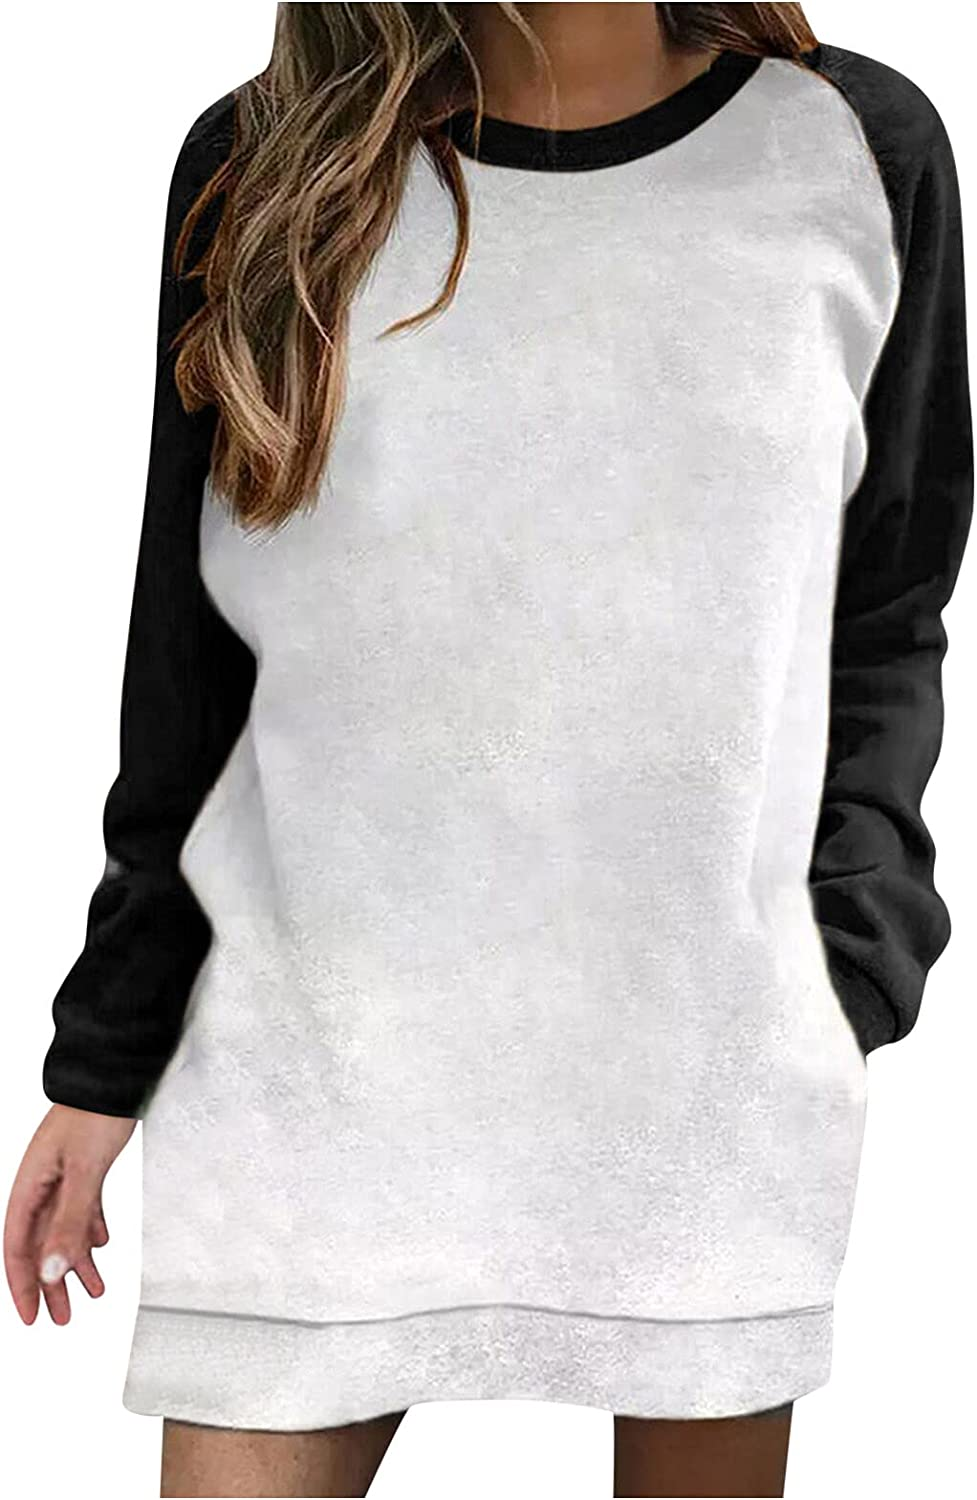 Aiouios Lightweight Sweatshirts for Women Graphic Solid Color Long Sleeve Splicing Pullover Casual Crewneck Blouses Tops